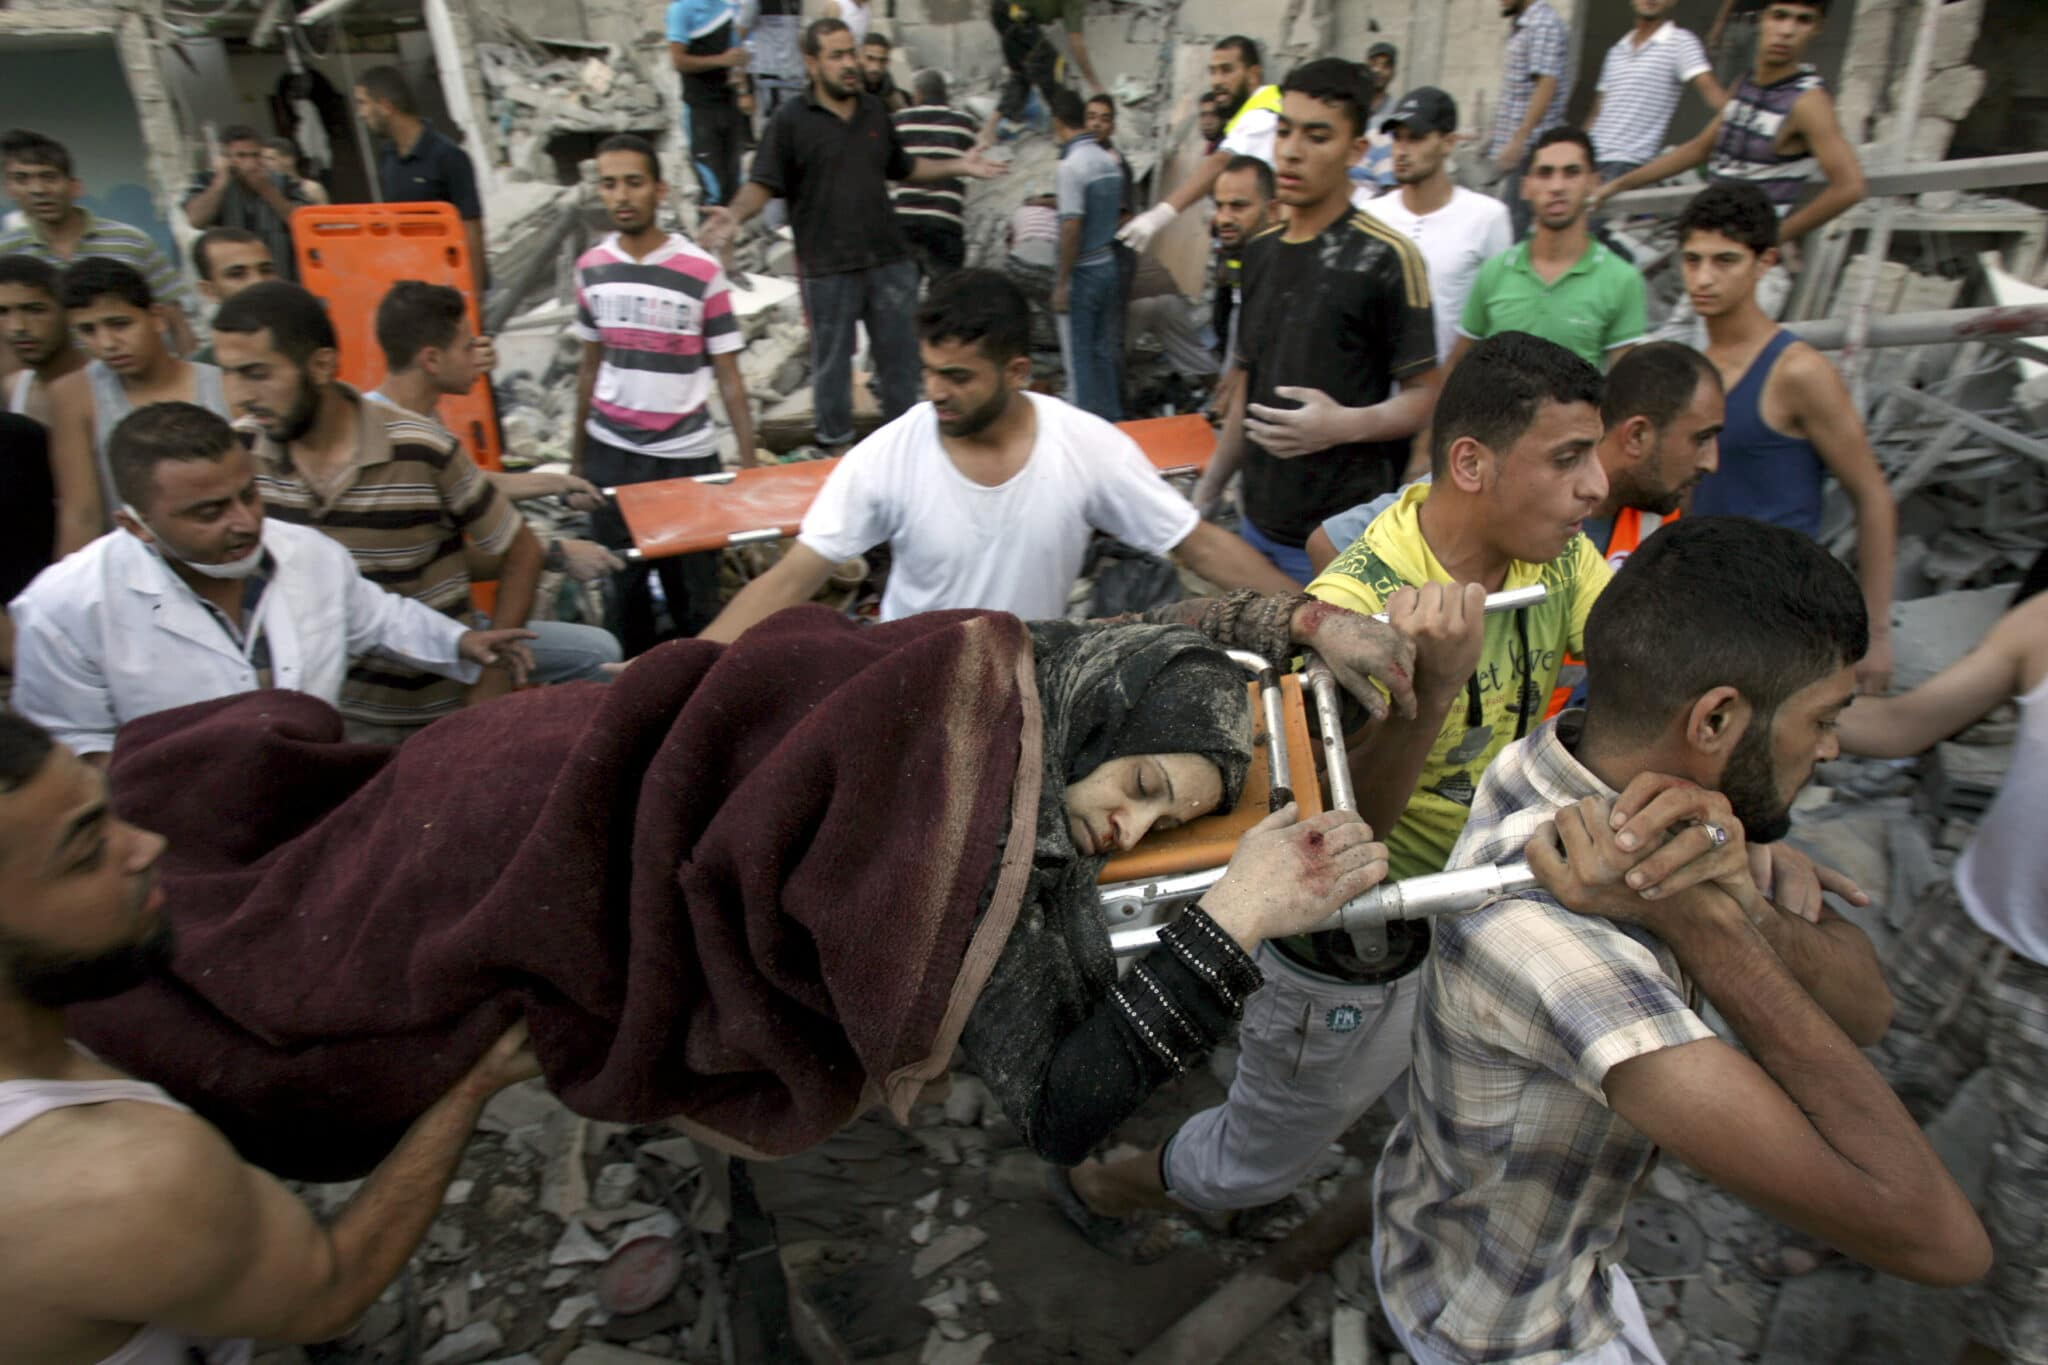 Men evacuate a survivor of an Israeli airstrike that hit the Al Ghoul family building in Rafah, southern Gaza Strip, killing and wounding many members of the family. A fierce debate is raging within Israel's military over the extent to which soldiers should be held legally accountable for their actions during last year's Gaza war. (AP Photo/Eyad Baba, File)